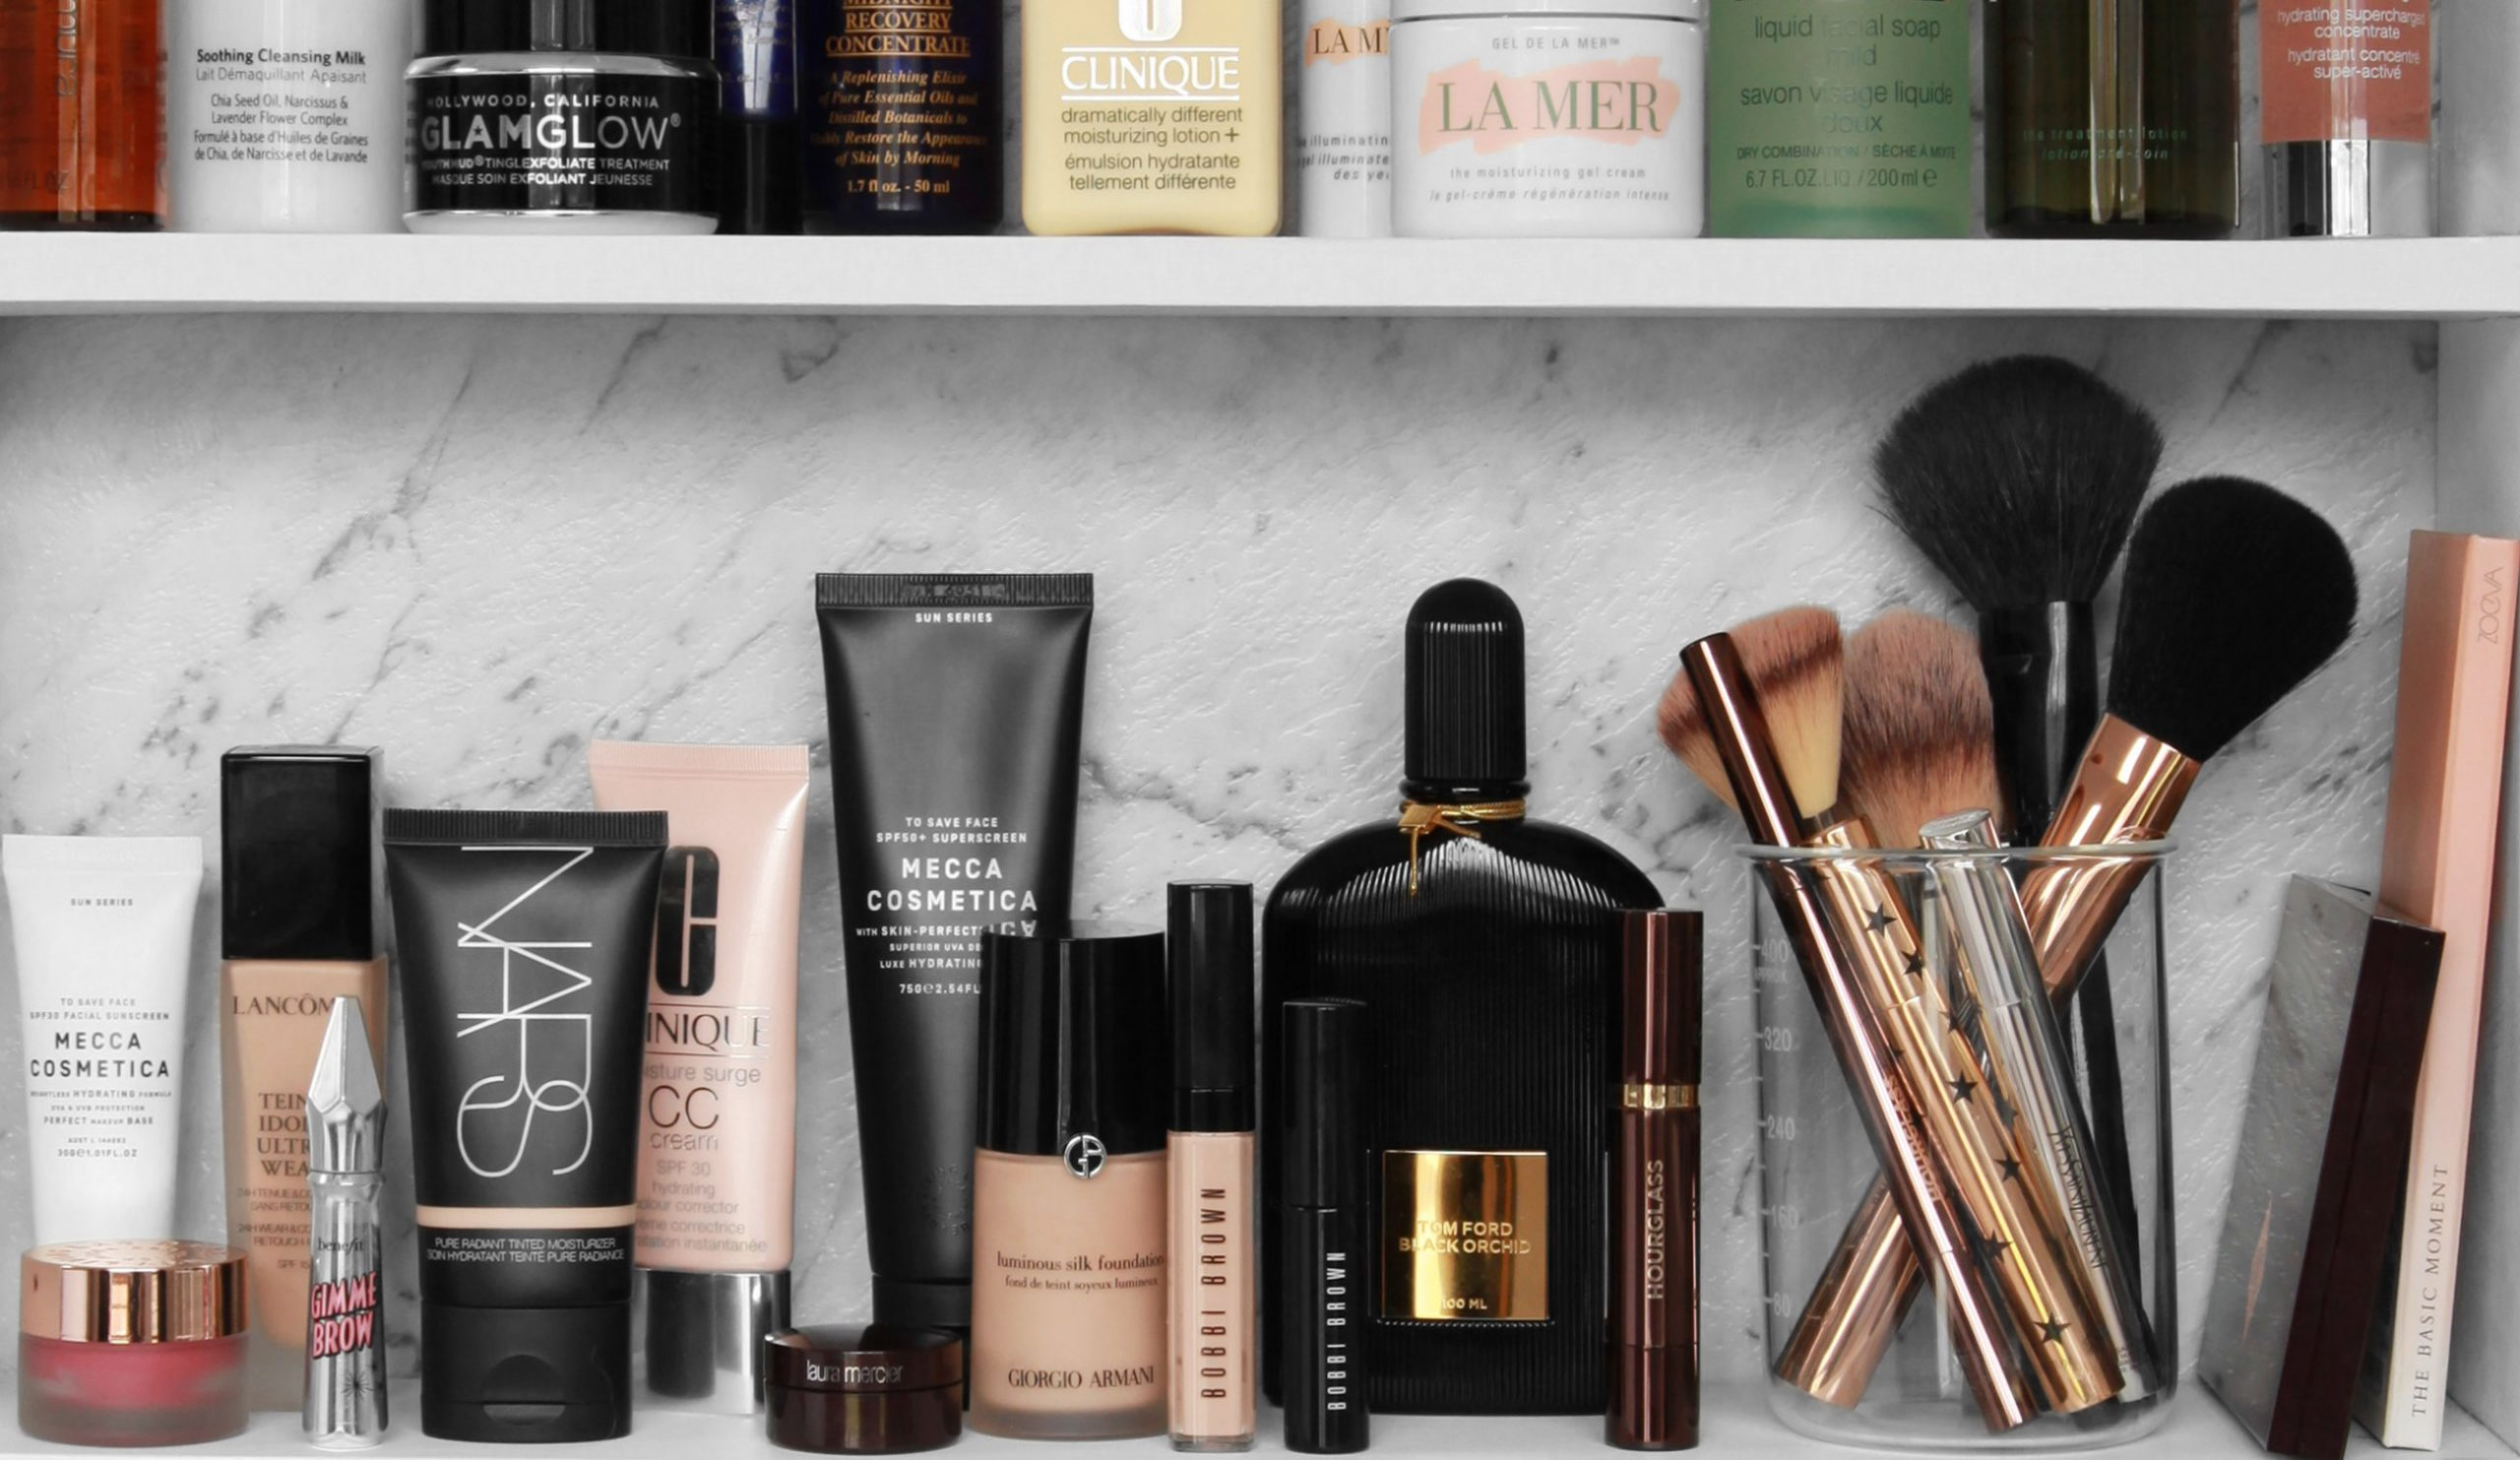 Makeup Shelfie Beauty Essentials Design By Aikonik Banner Design By Aikonik